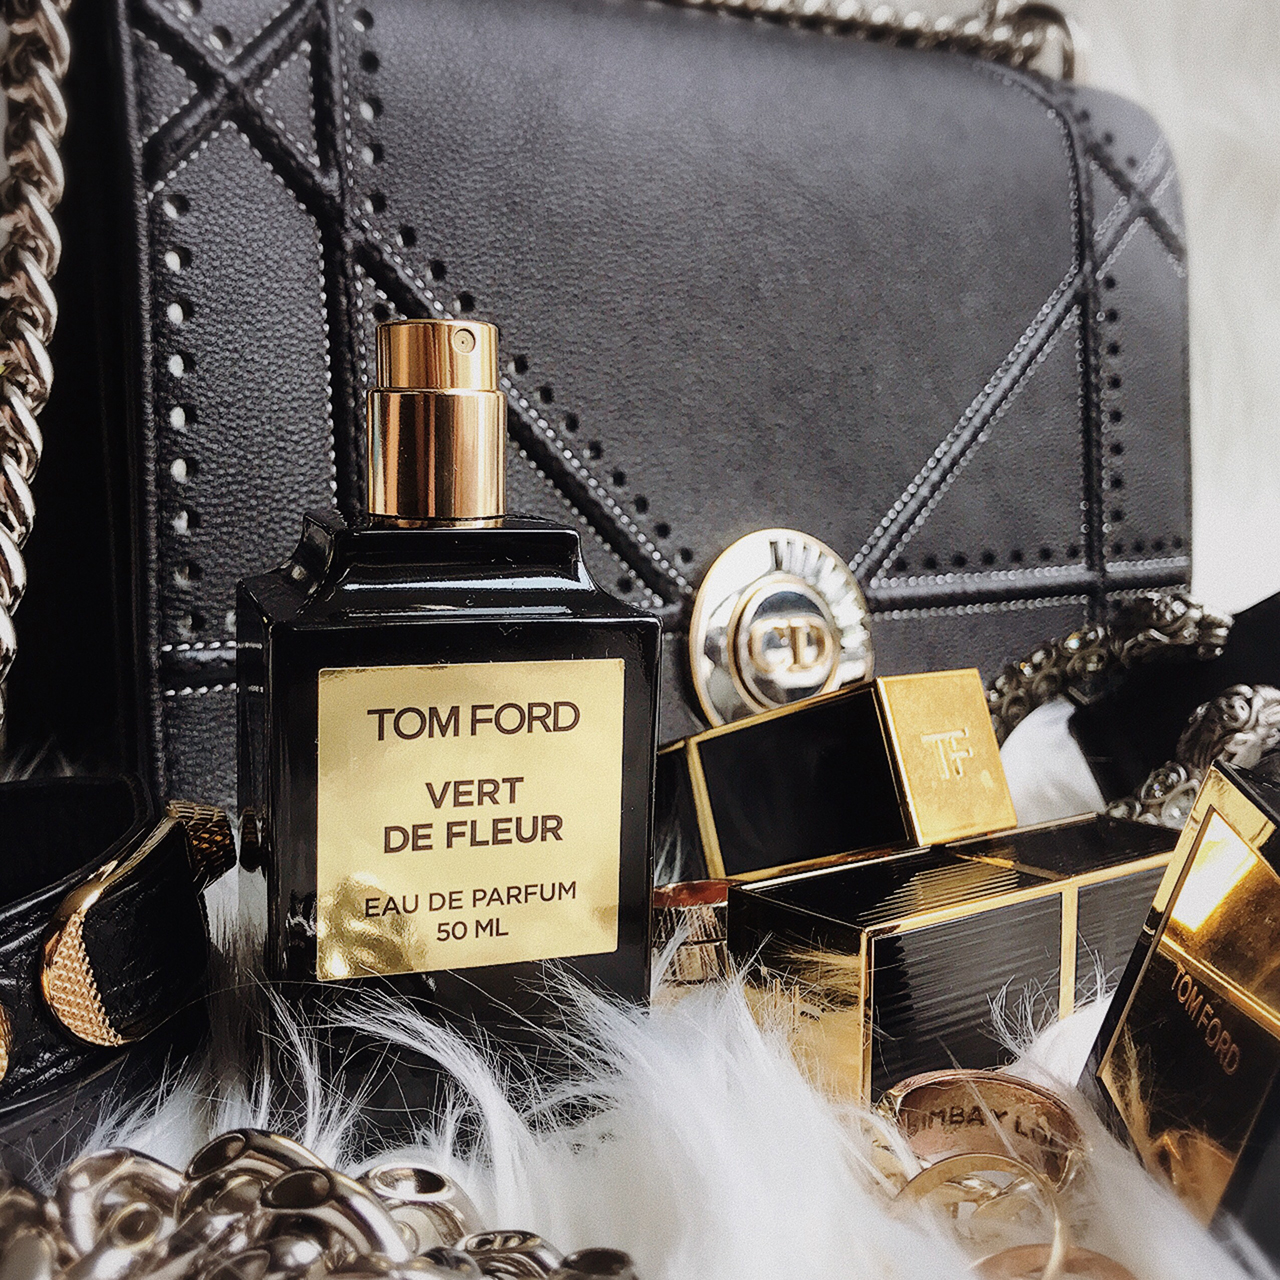 Tom Ford Vert de Fleur Private Blend